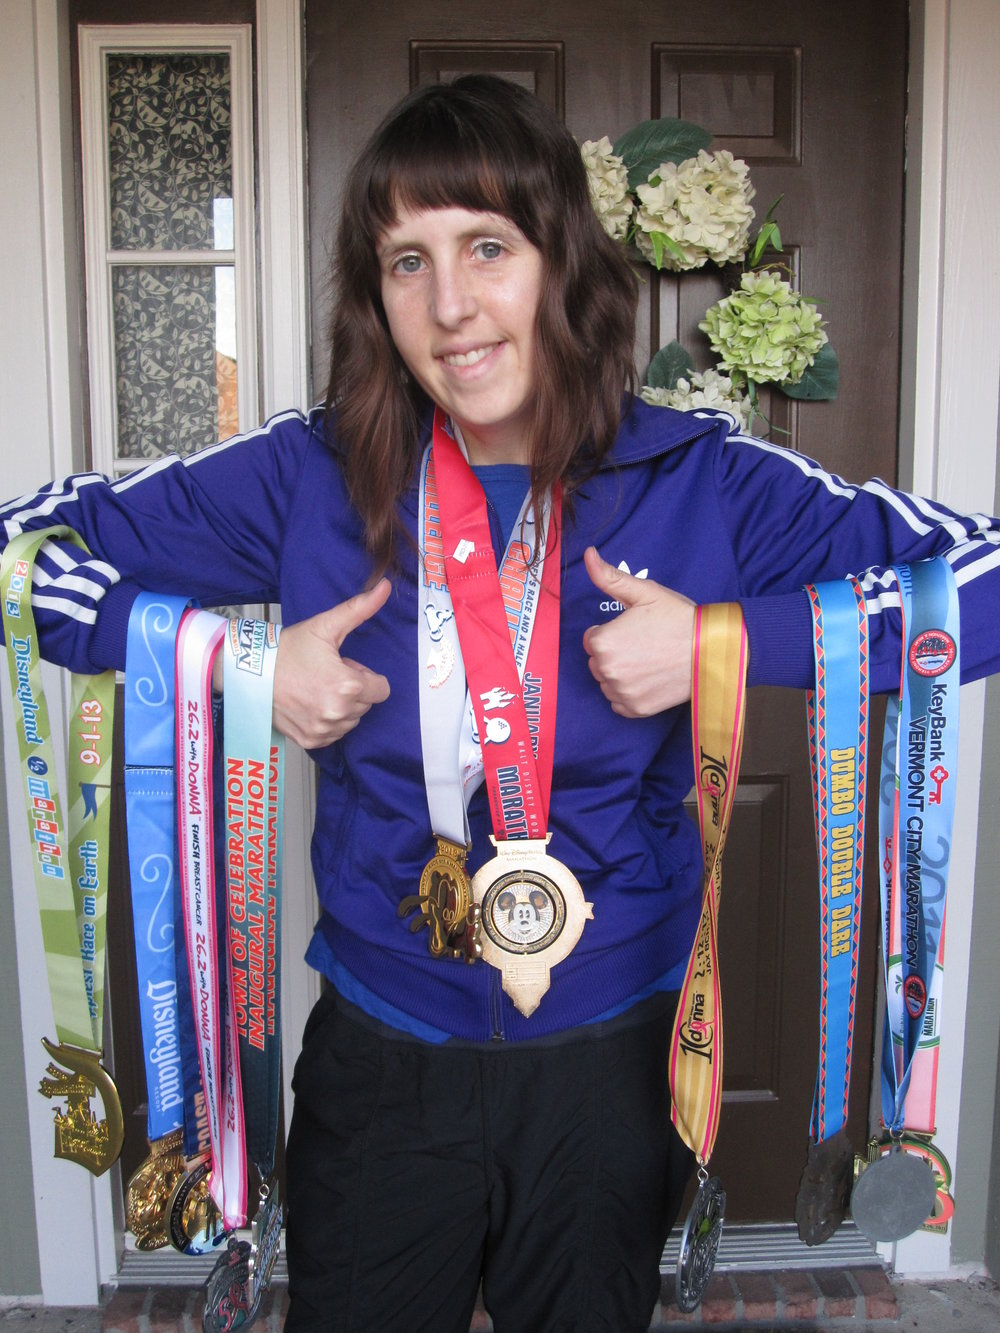 Emily and some of her race medals